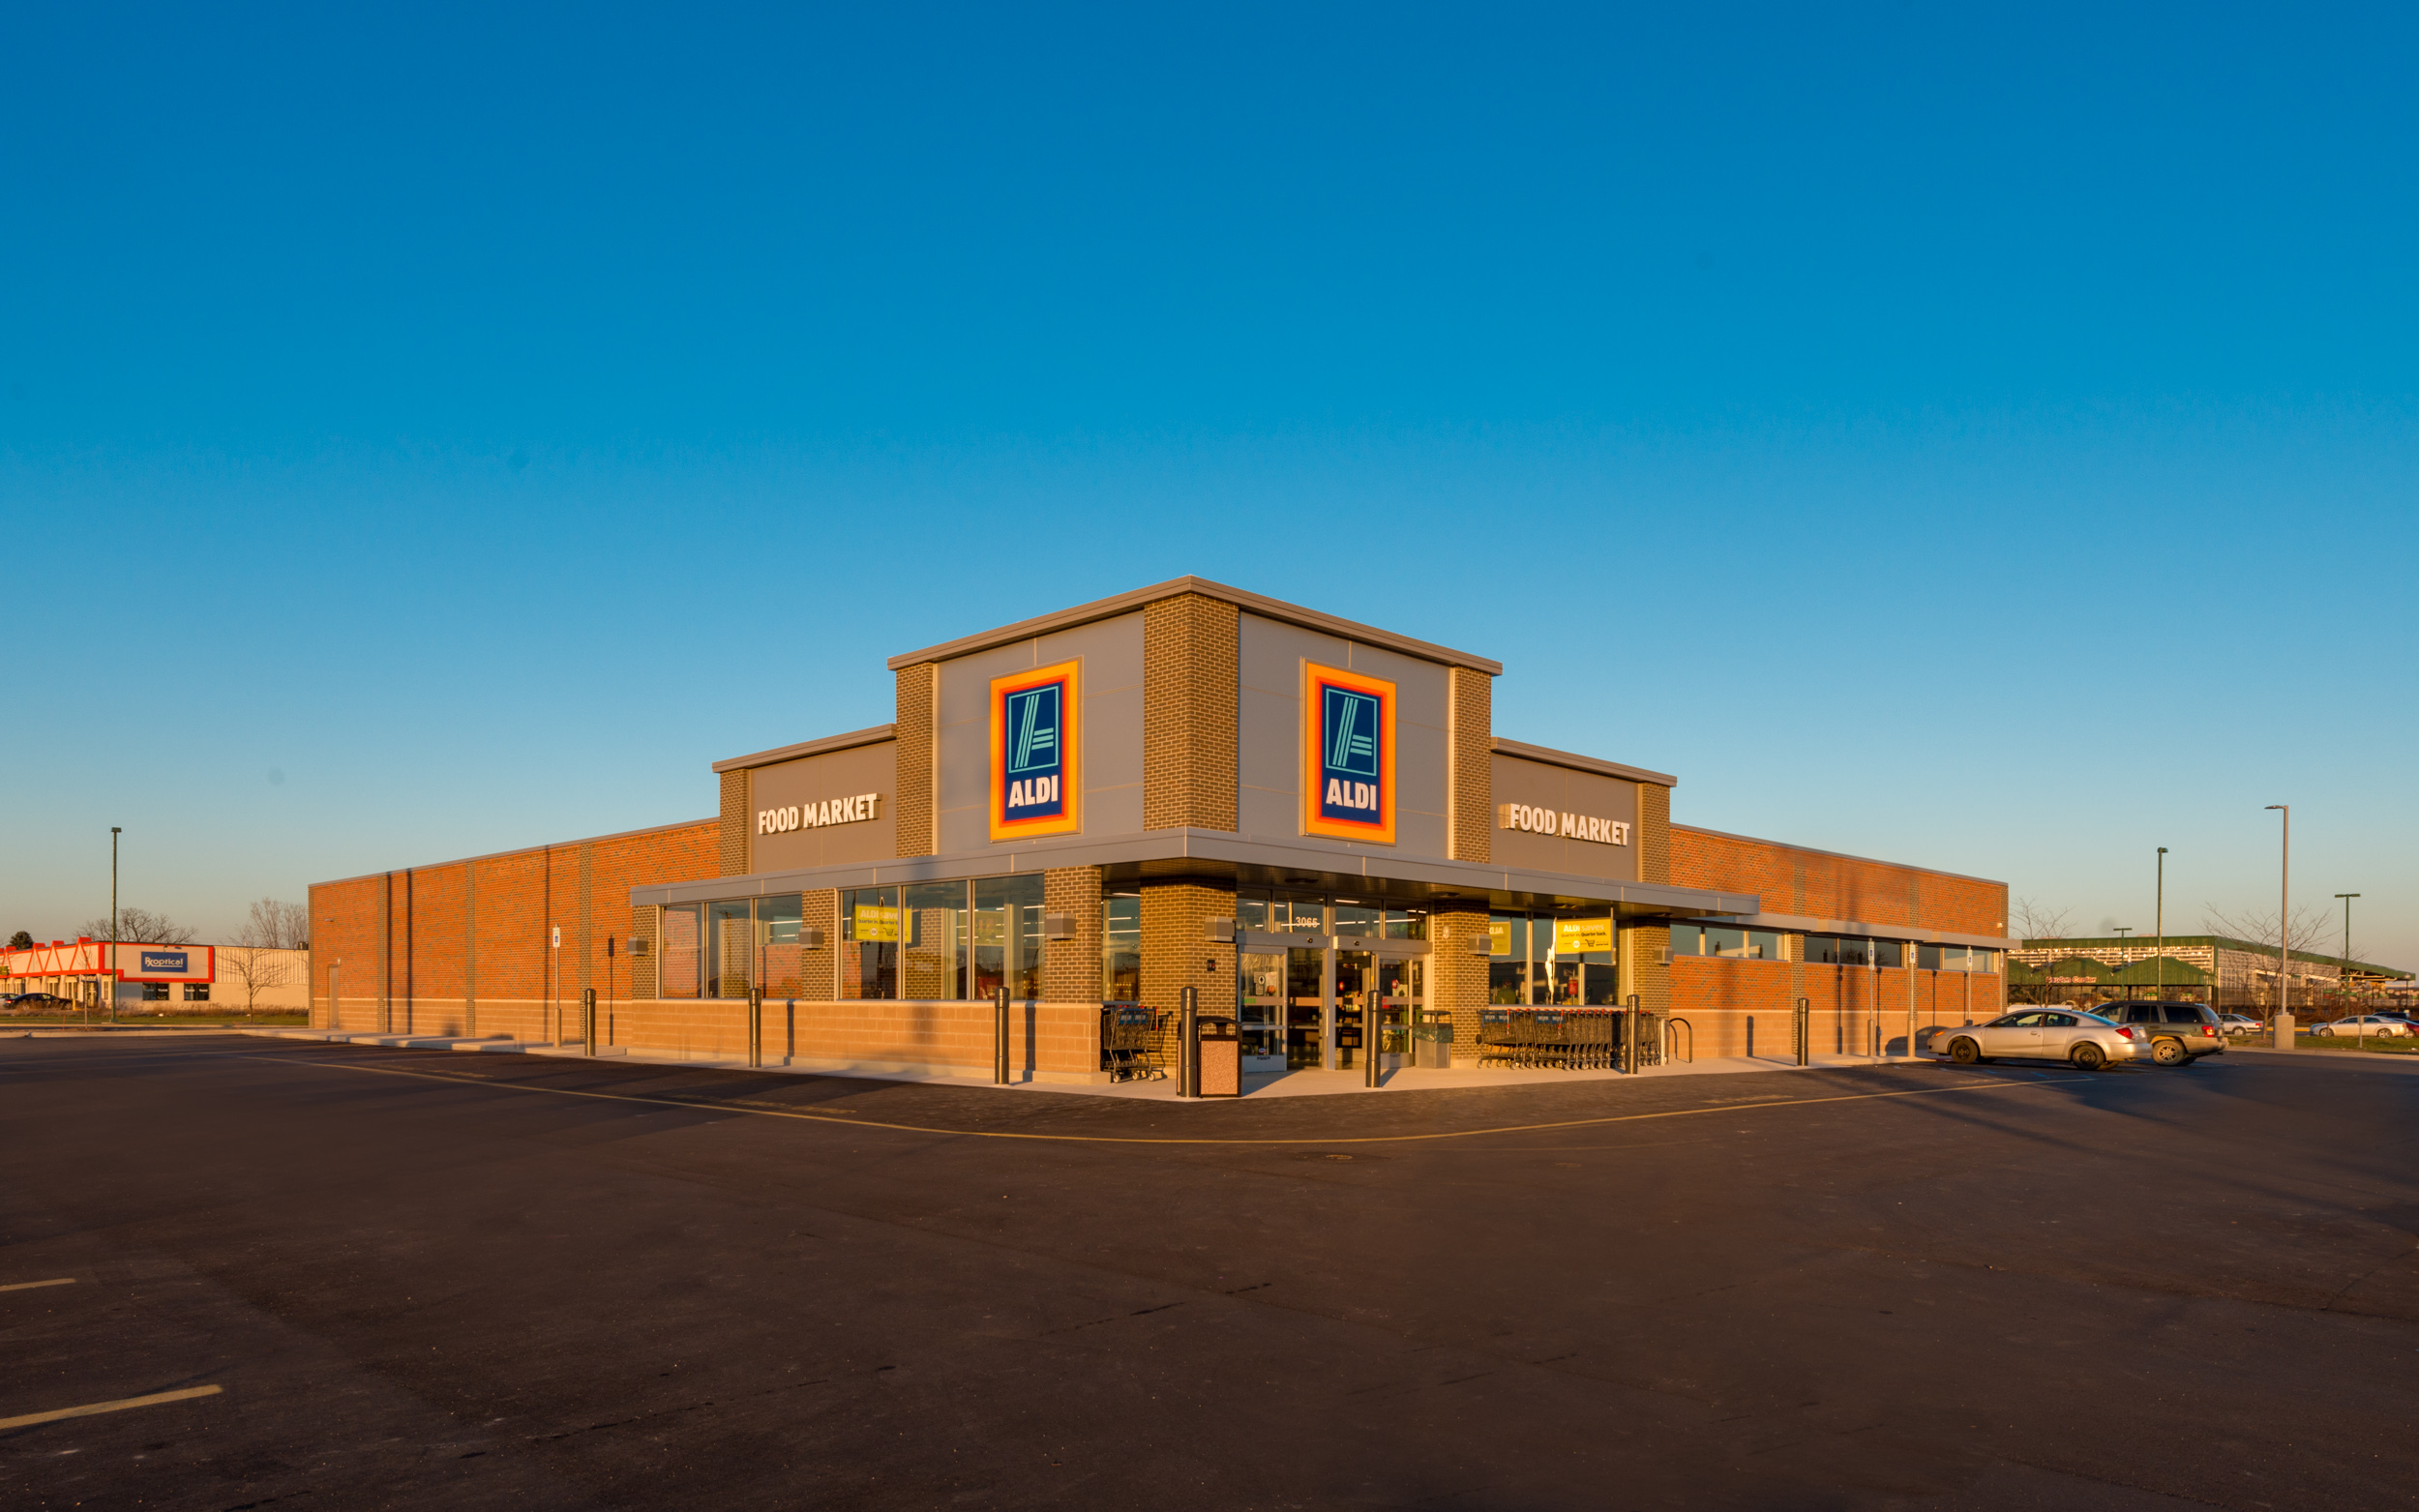 Aldi Food Market Three Rivers Corporation